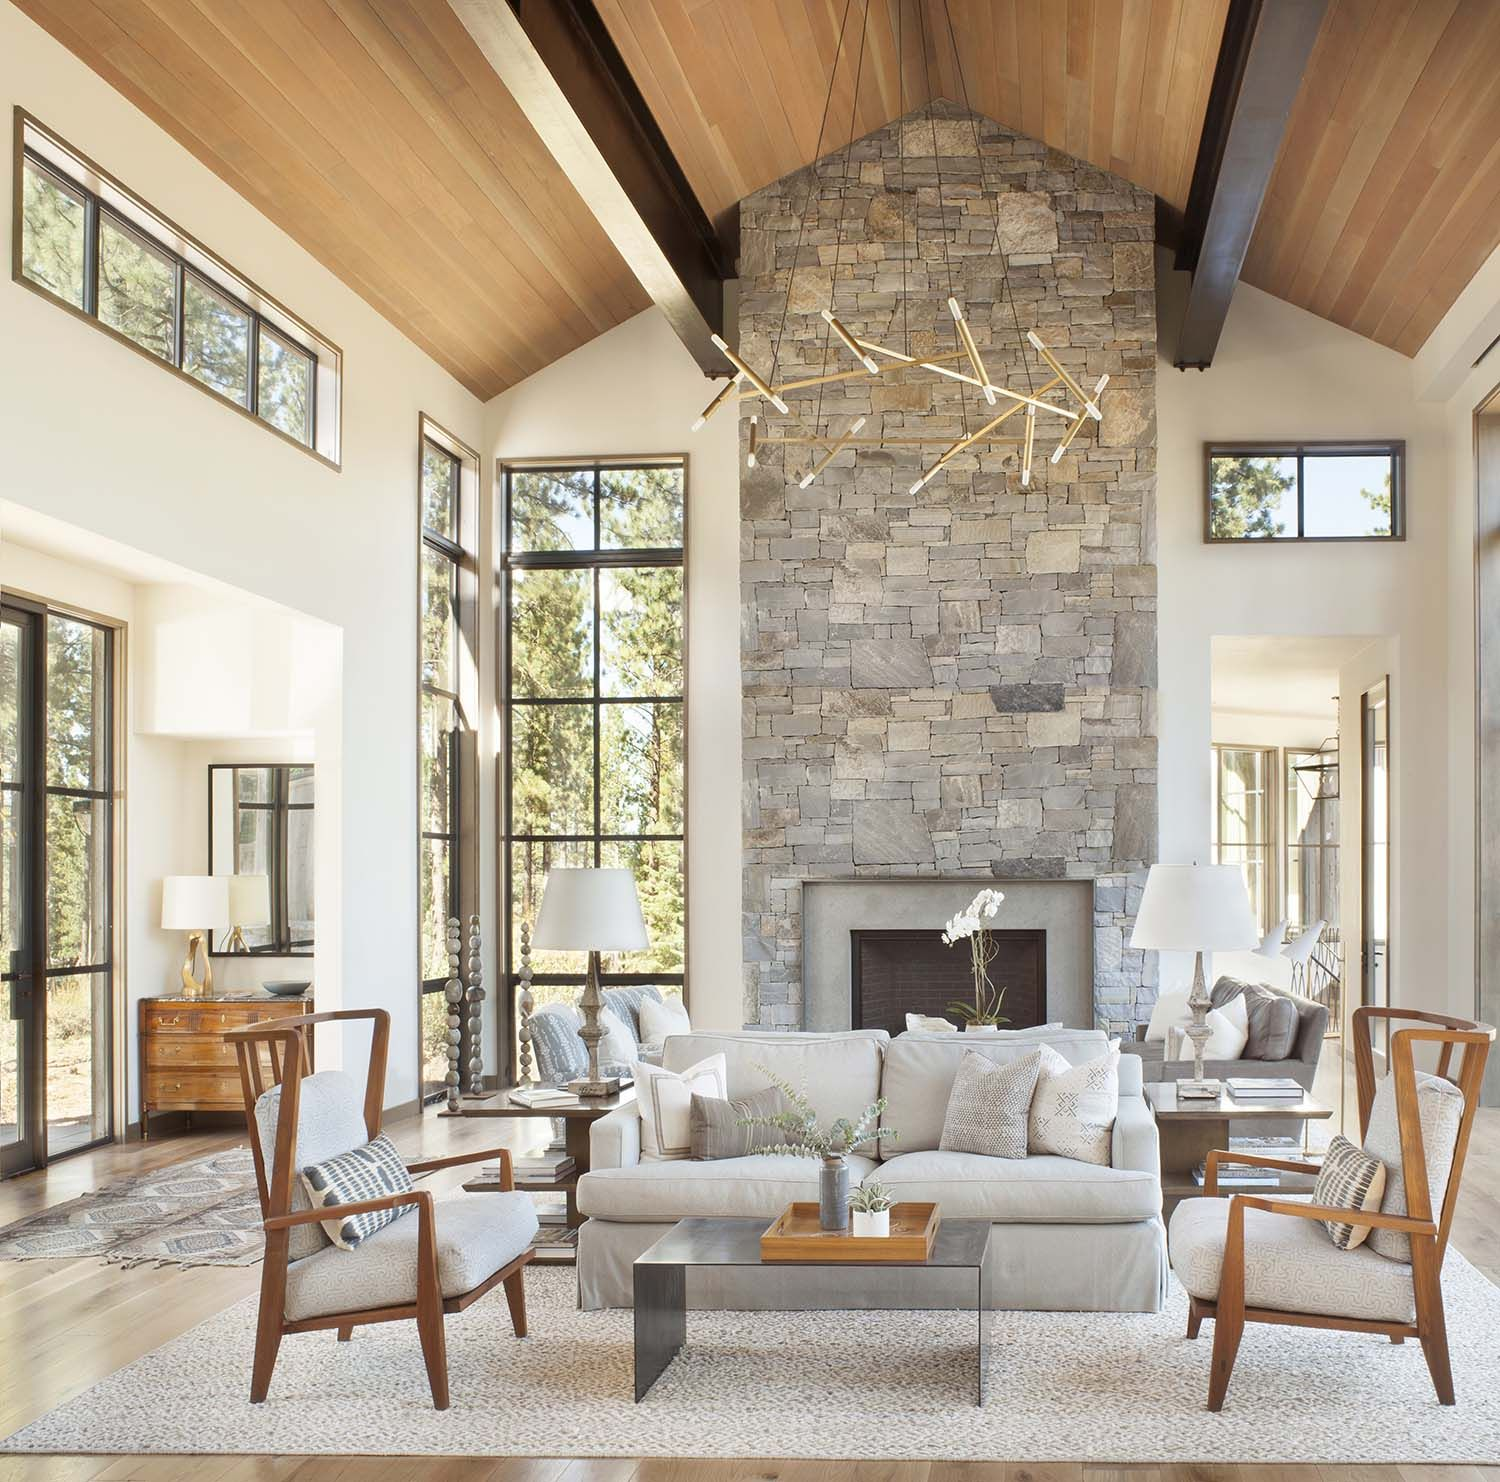 Stunning mountain home in lake tahoe evokes contemporary barn feeling also best double volume design images future house rh pinterest